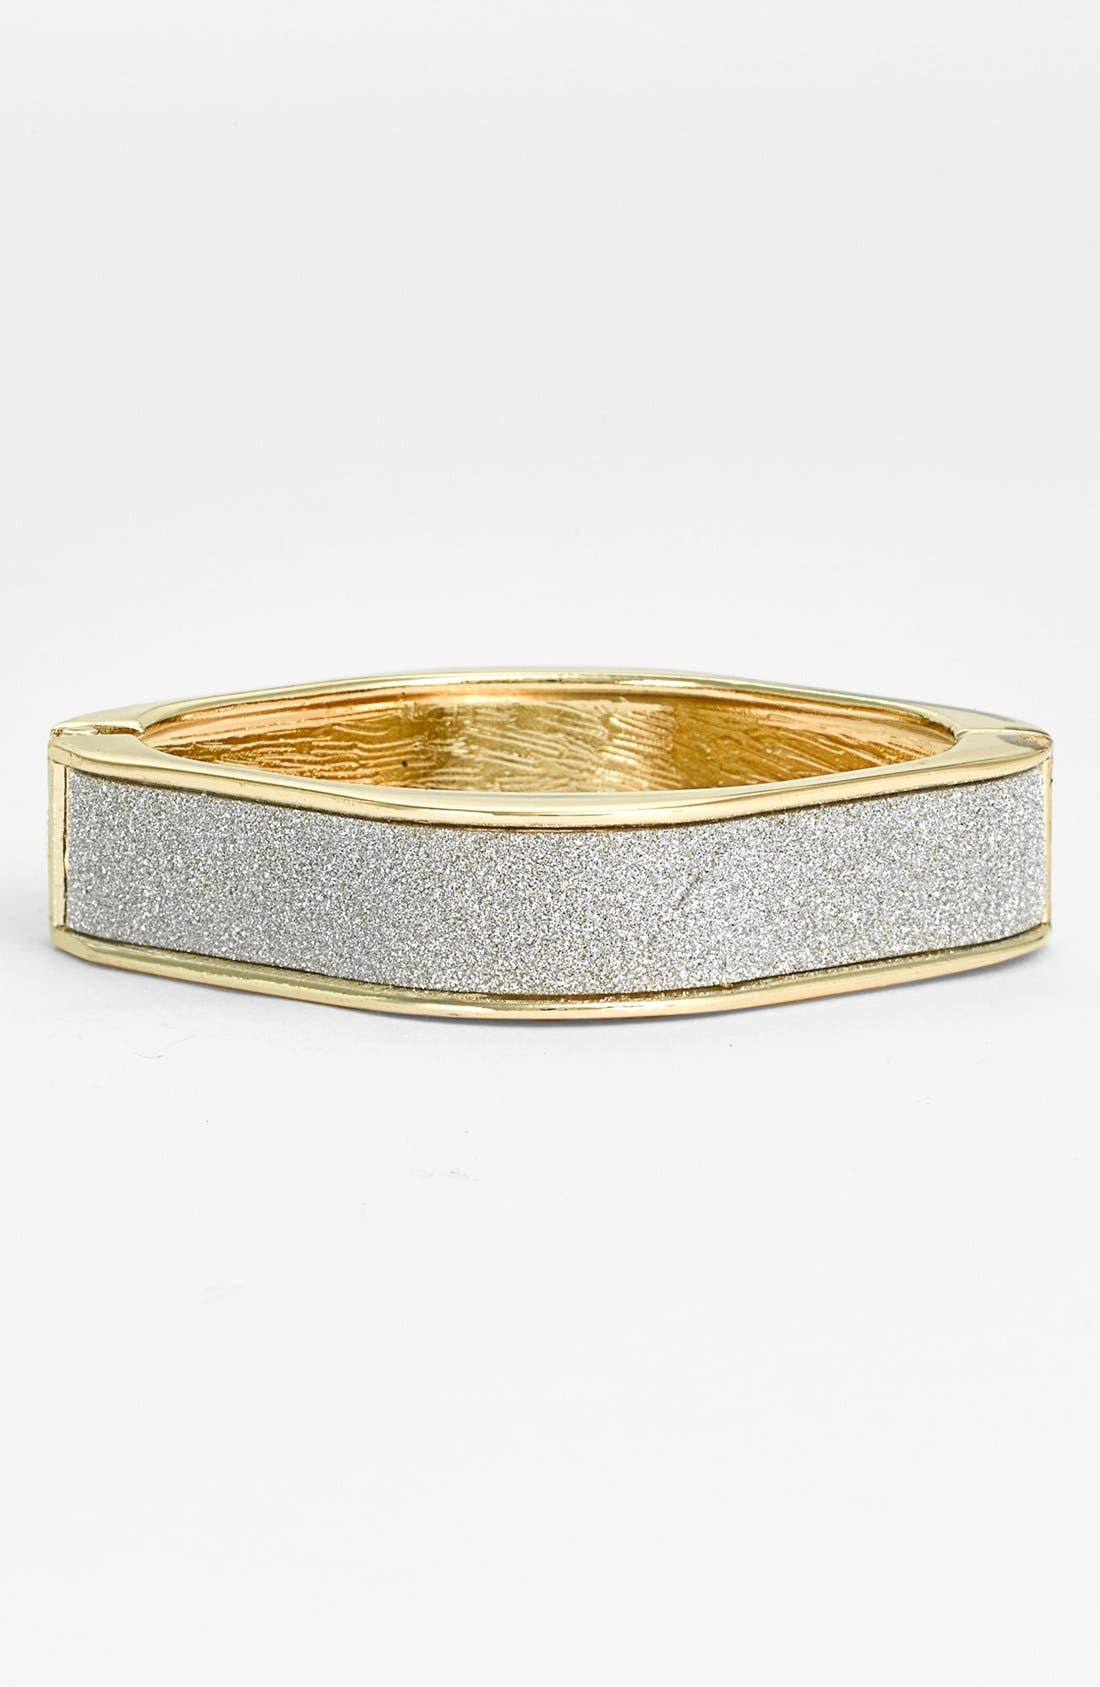 Alternate Image 1 Selected - Guinevere Square Hinged Bangle